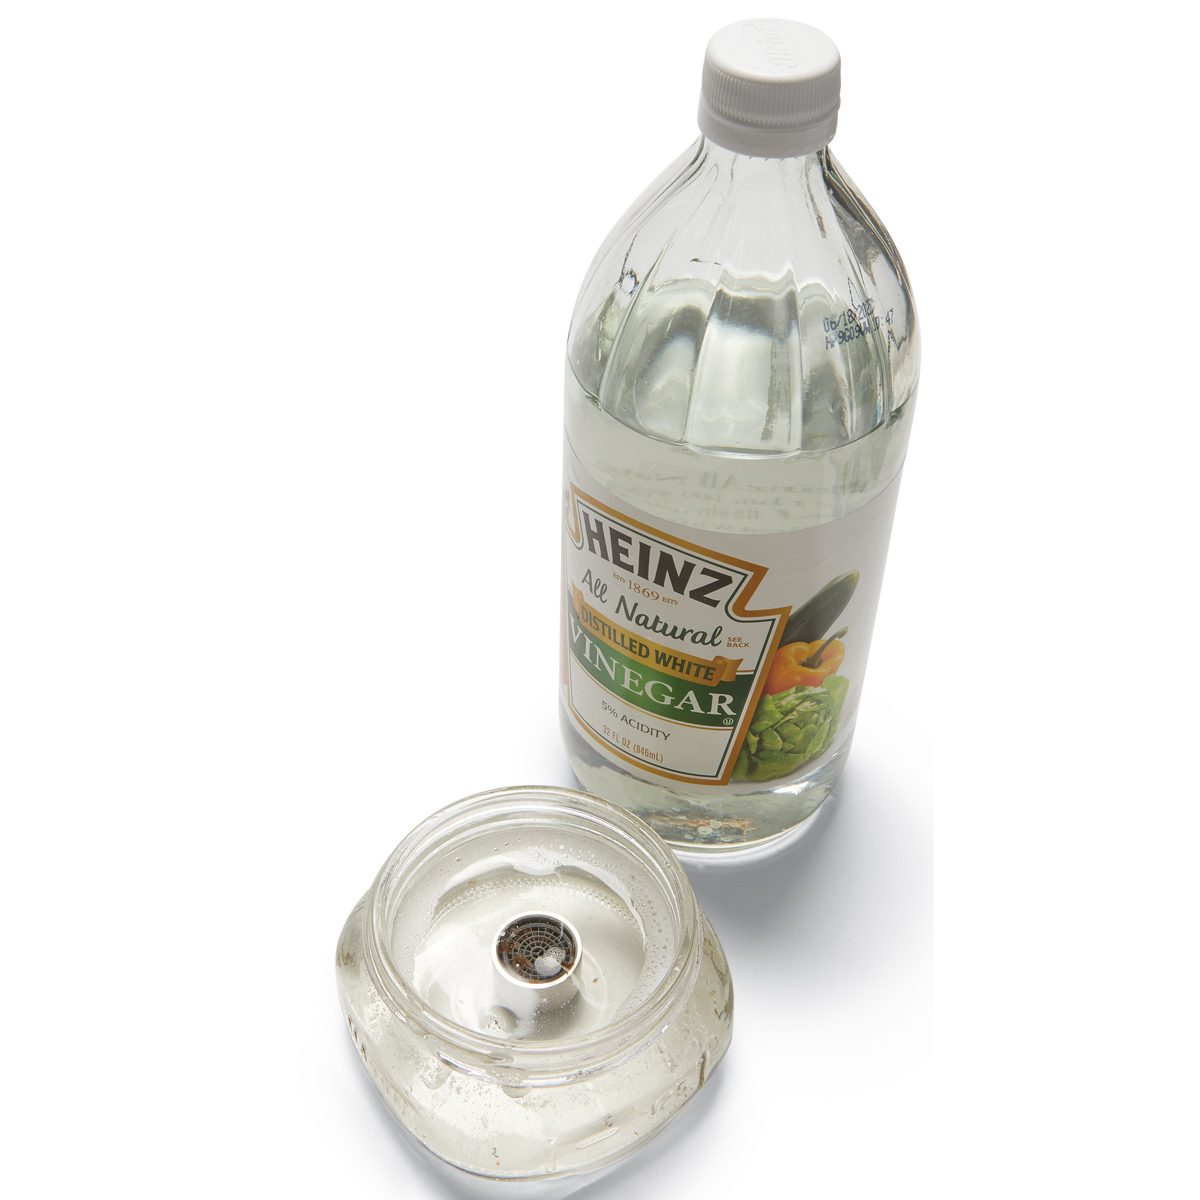 vinegar aerator cleaner